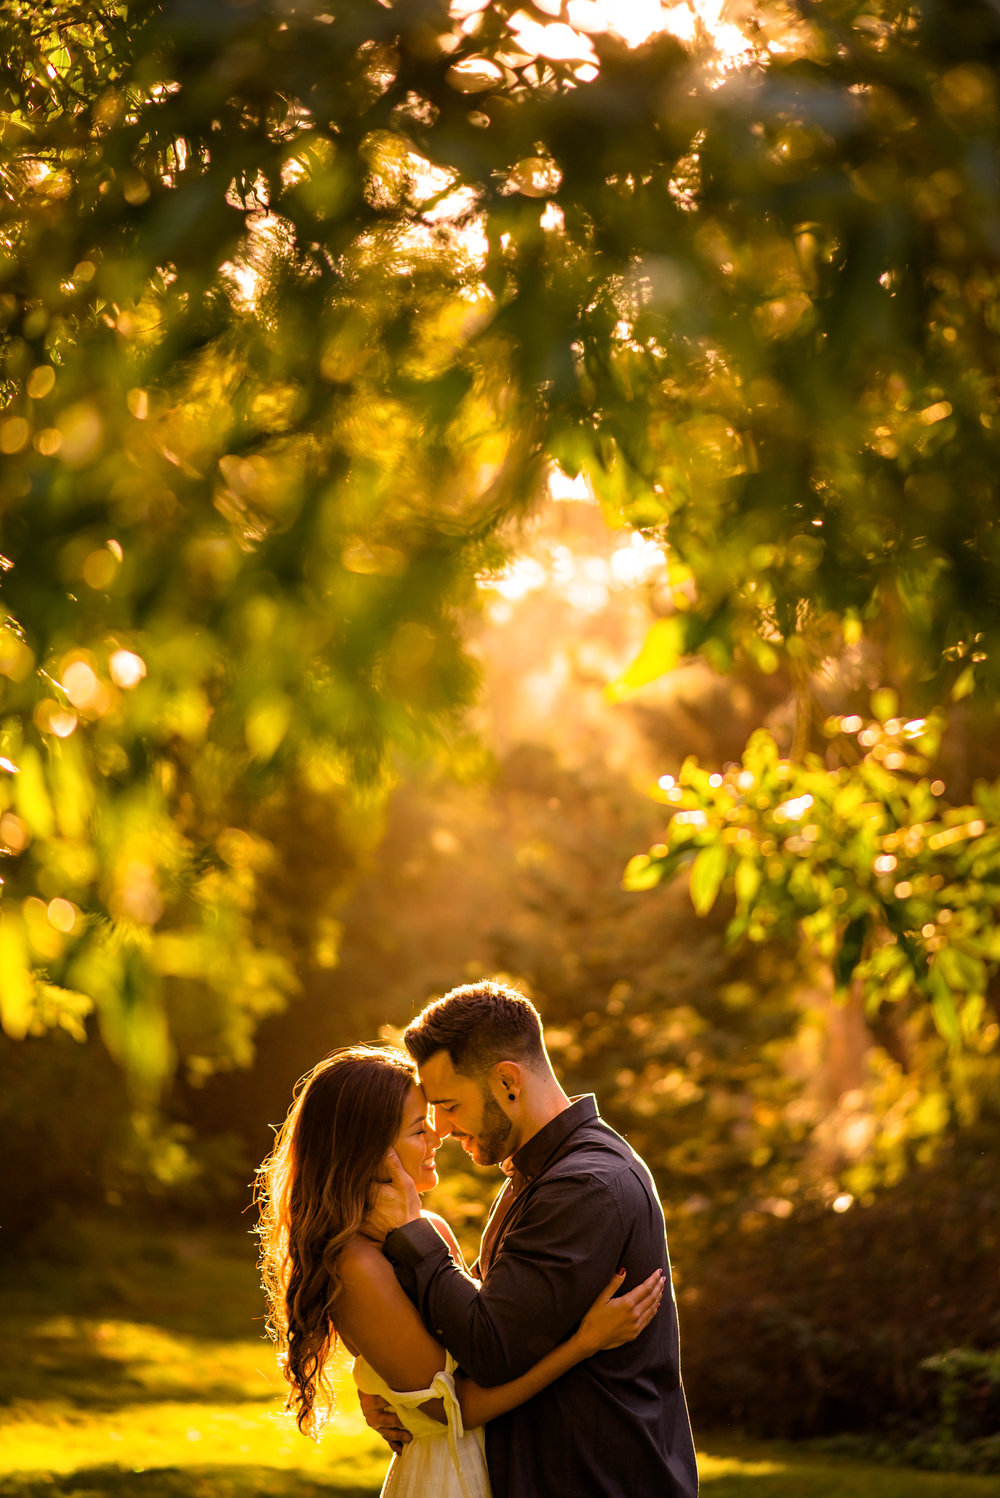 eden-matt-008-san-francisco-engagement-wedding-photographer-katherine-nicole-photography.JPG